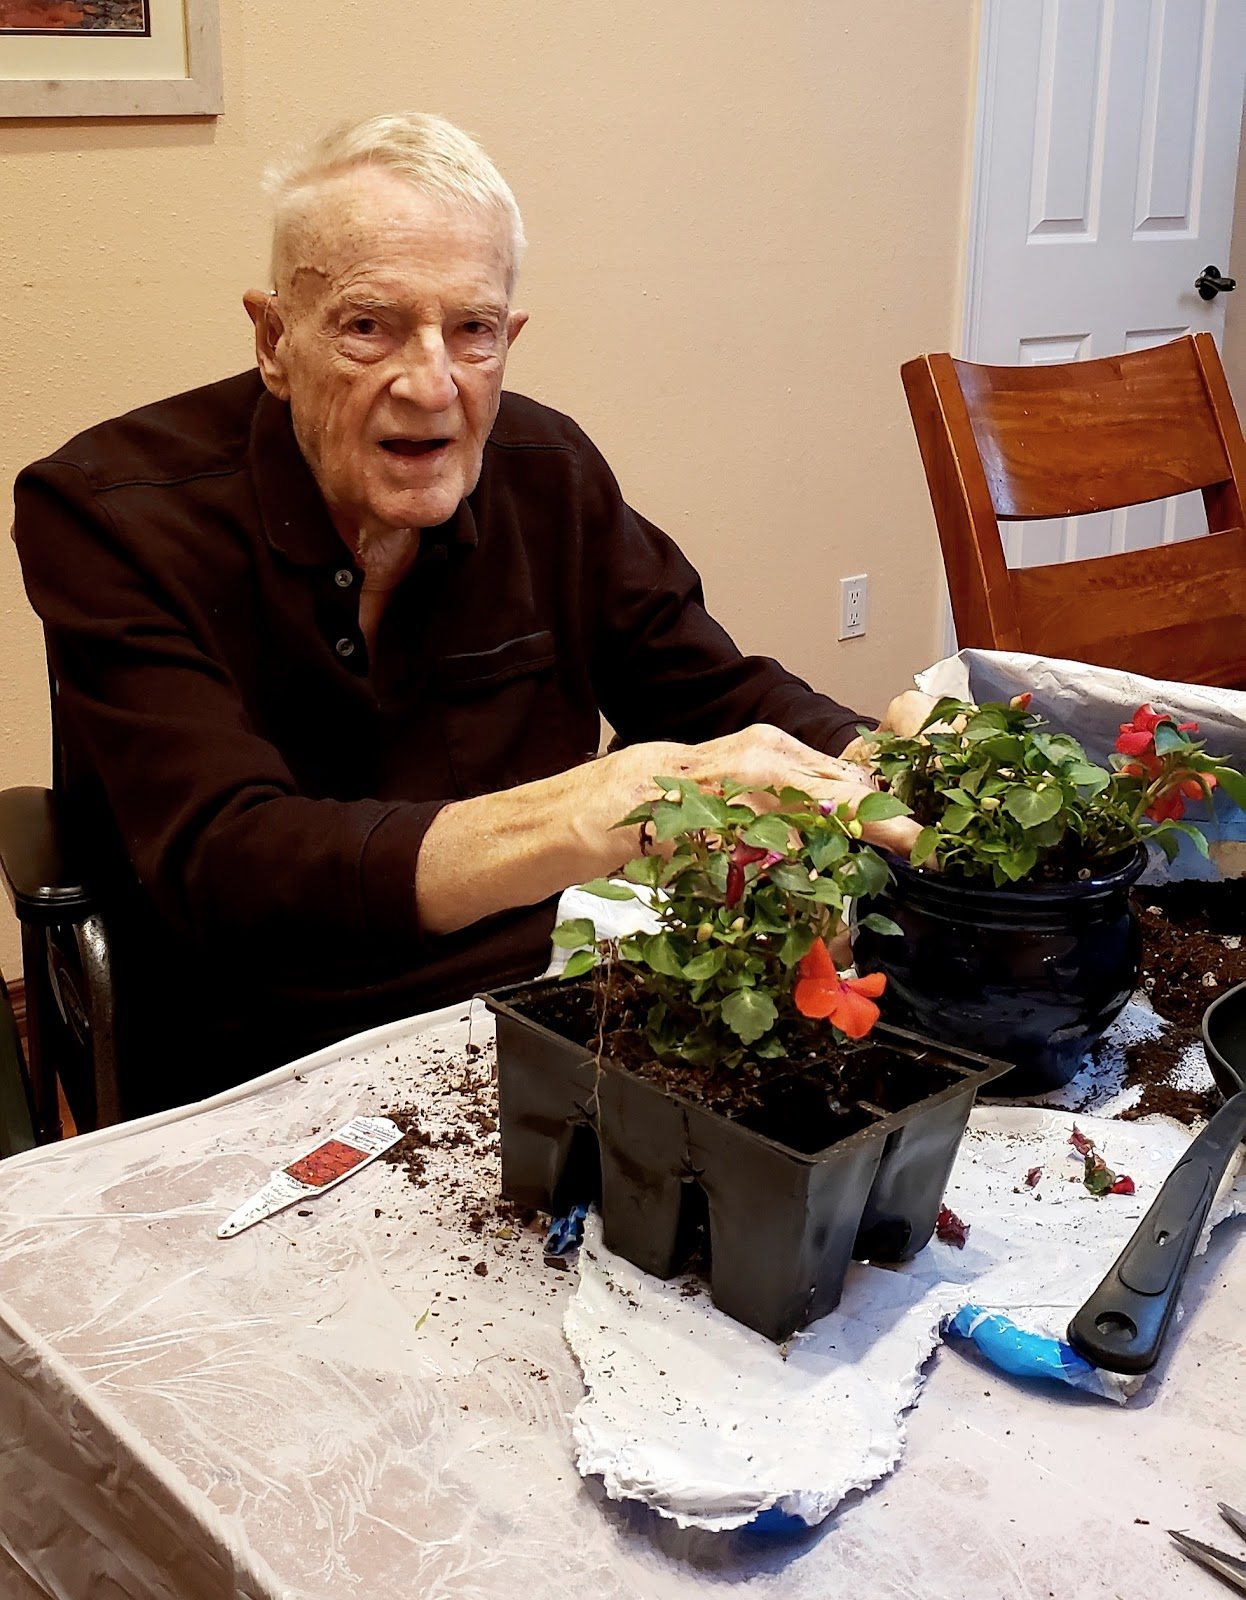 John potting some flowers after he experienced a traumatic brain injury.